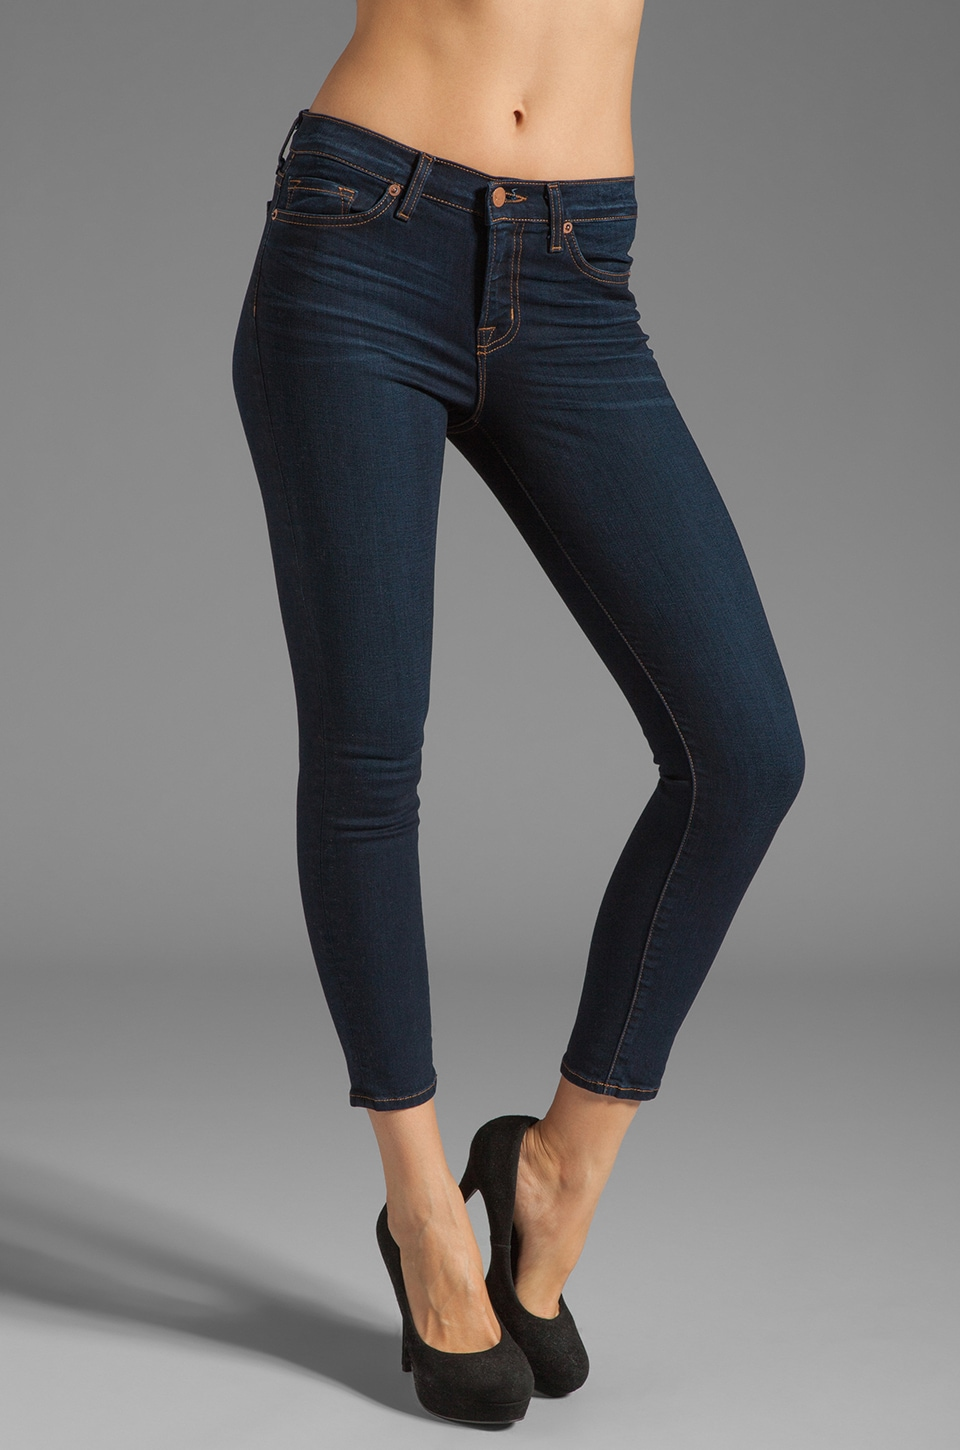 J Brand Mid Rise Crop Capri in Ignite